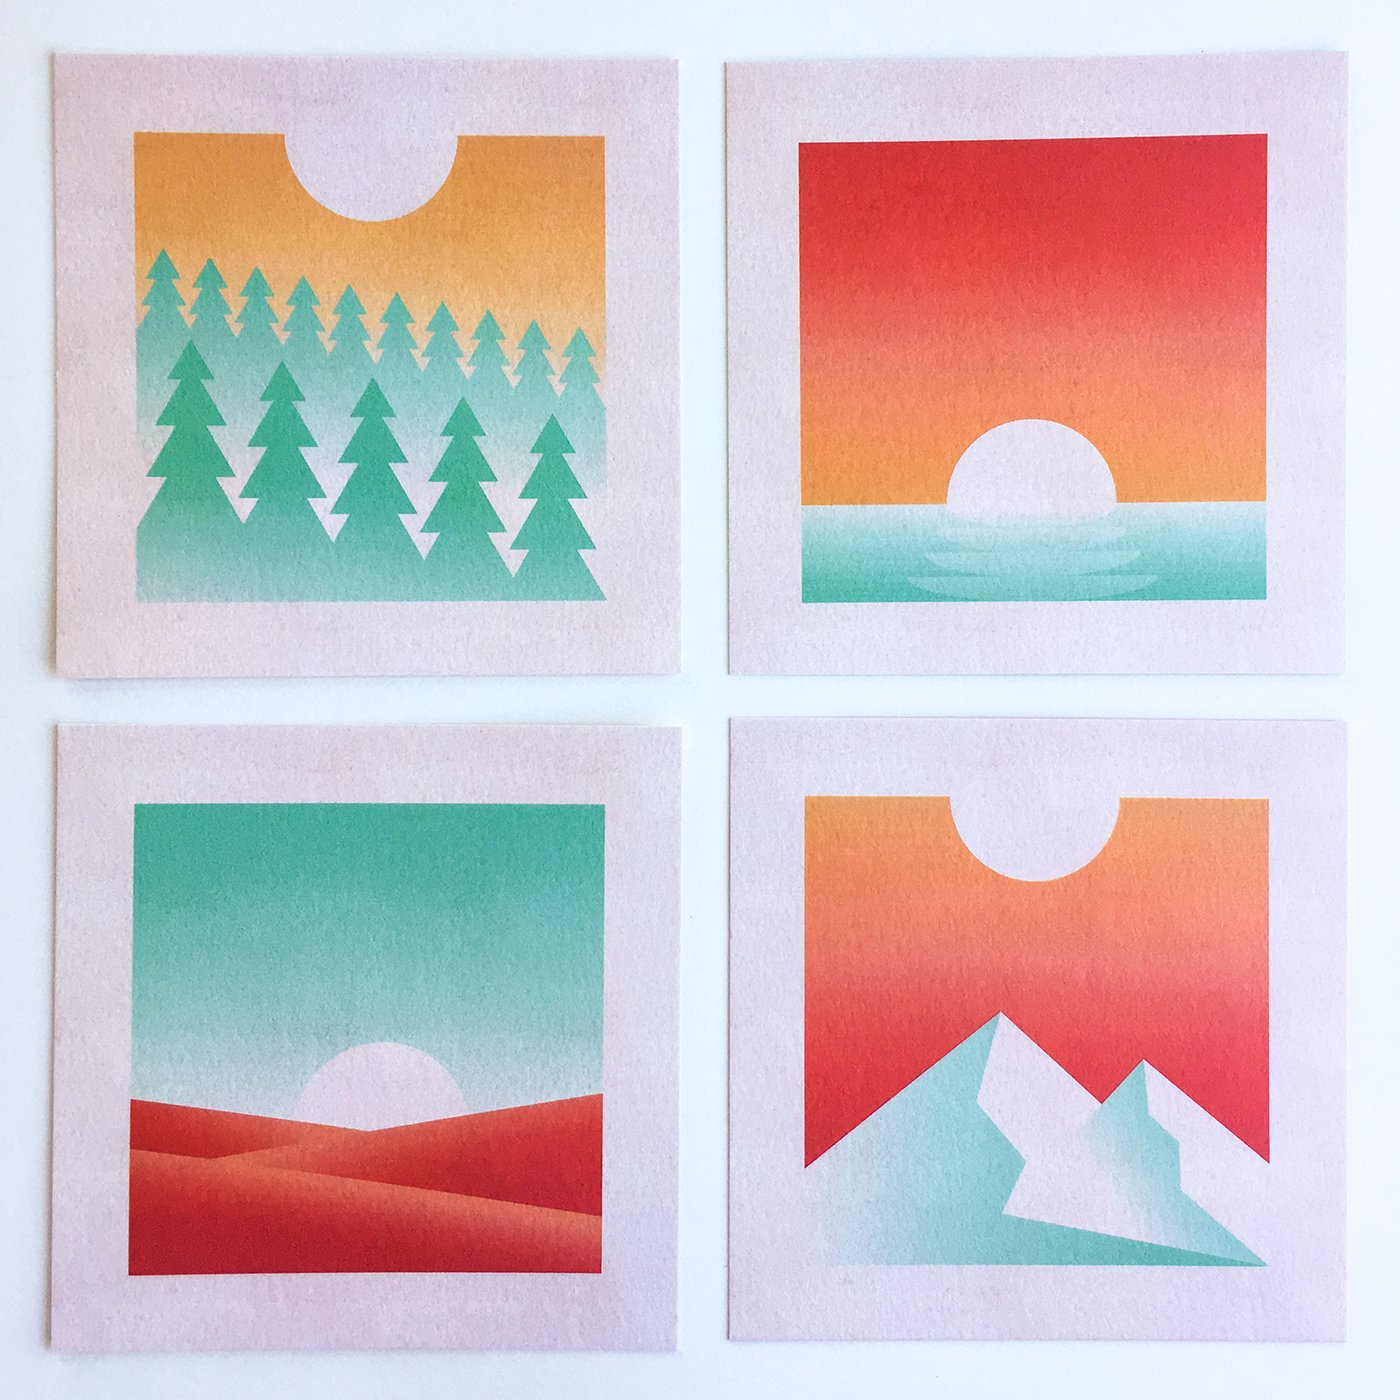 GEOMETRIC LANDSCAPE SERIES (ALL 4 PRINTS)